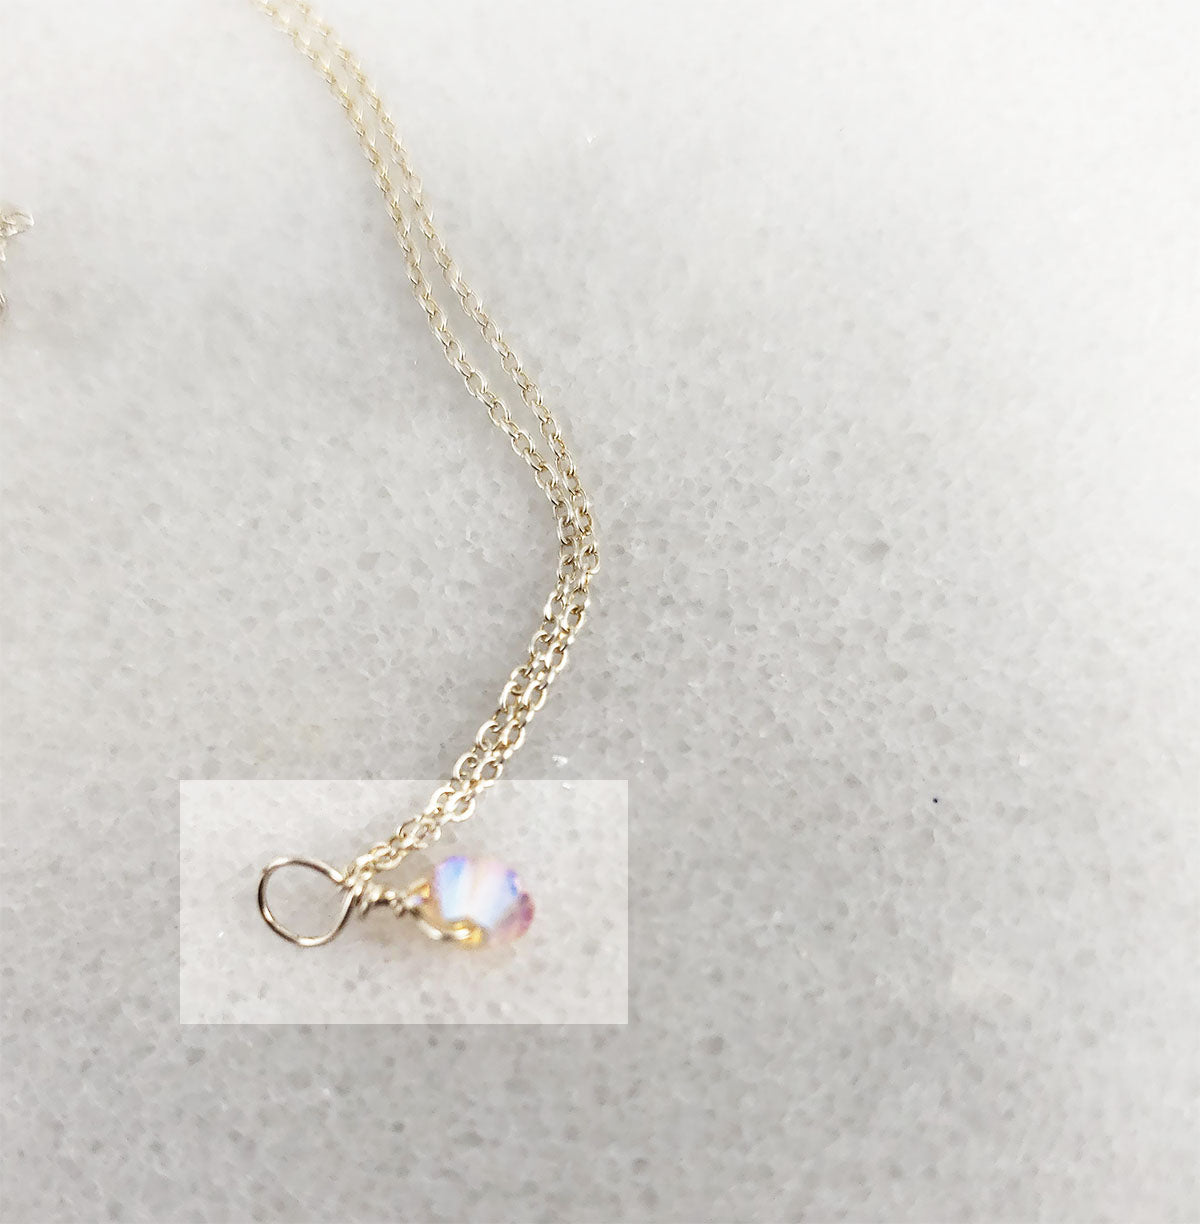 Vintage Rose Swarovski Crystal Necklace